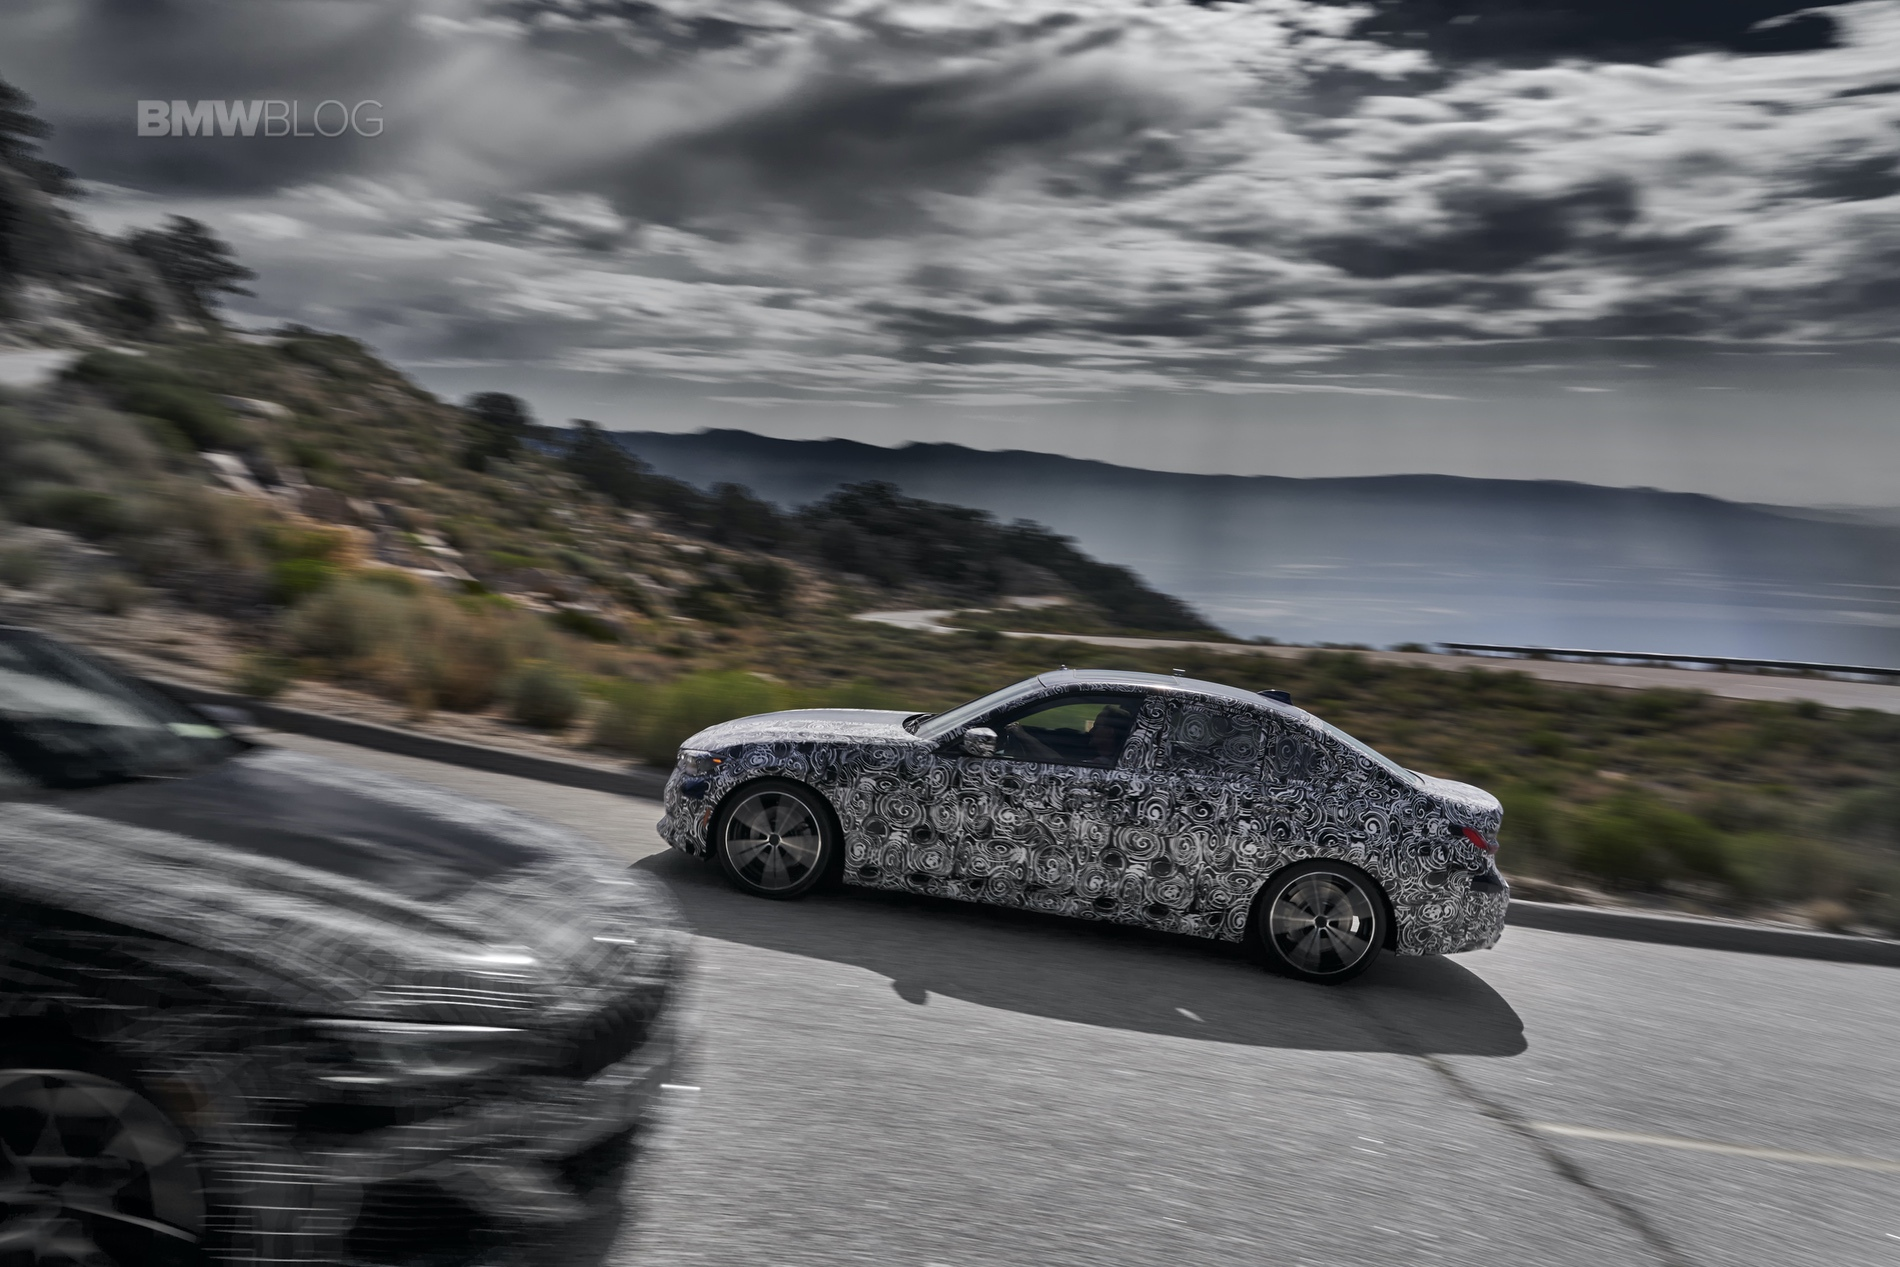 Bmw G20 3 Series Prototypes Sosialpolitik Greenlight Ariel Premium Lutz Hahn Wipes The Sweat On His Eyebrow In Hot August Morning Digital Thermometer Shoes 50 Degrees Celsius Inside Camouflaged But